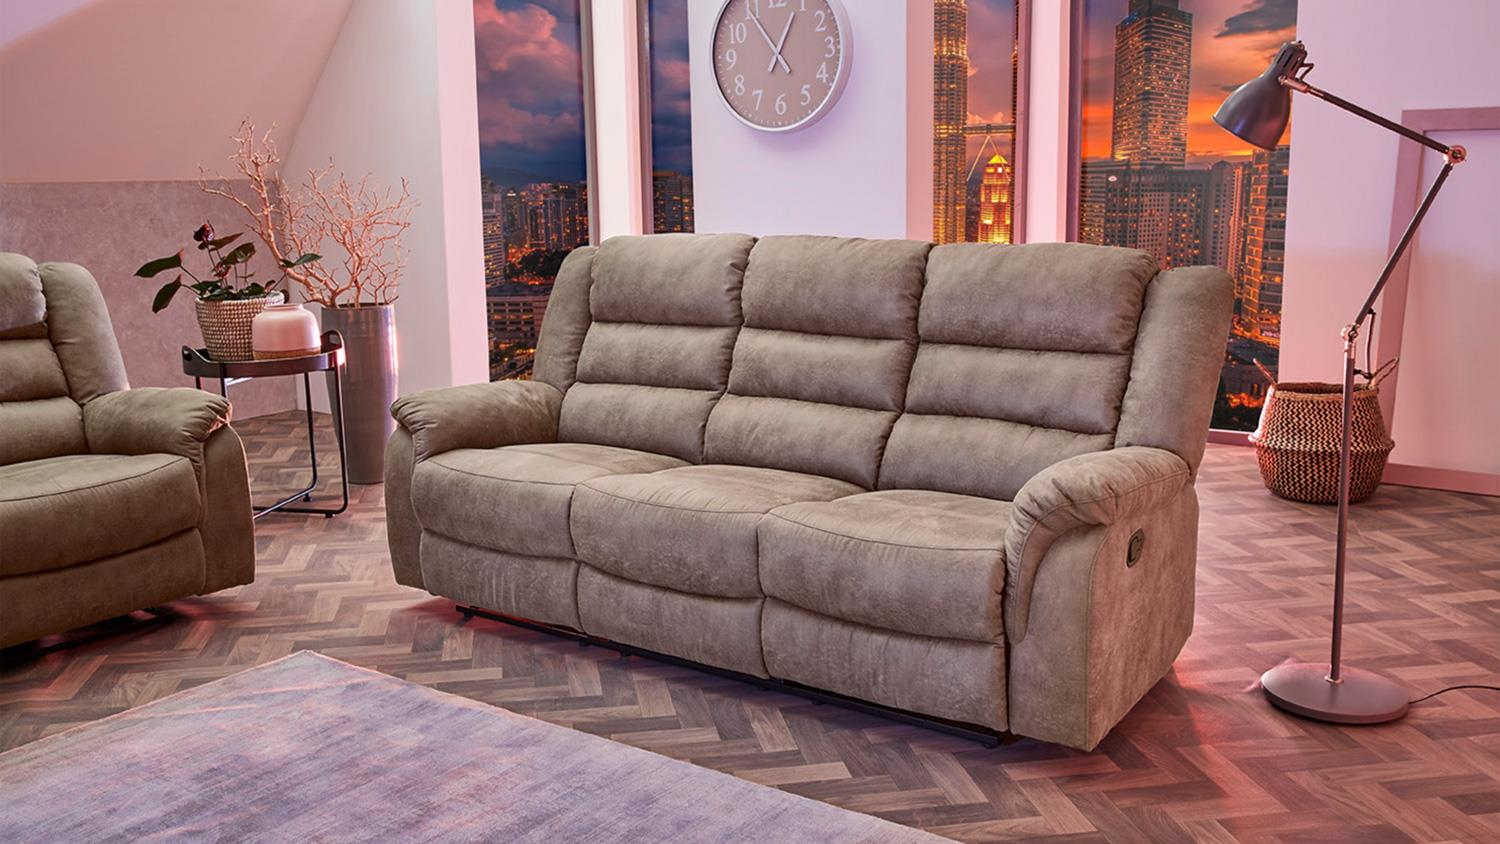 Sofa Cleveland Sessel Relaxsessel 3 Sitzer Funktion Vintage